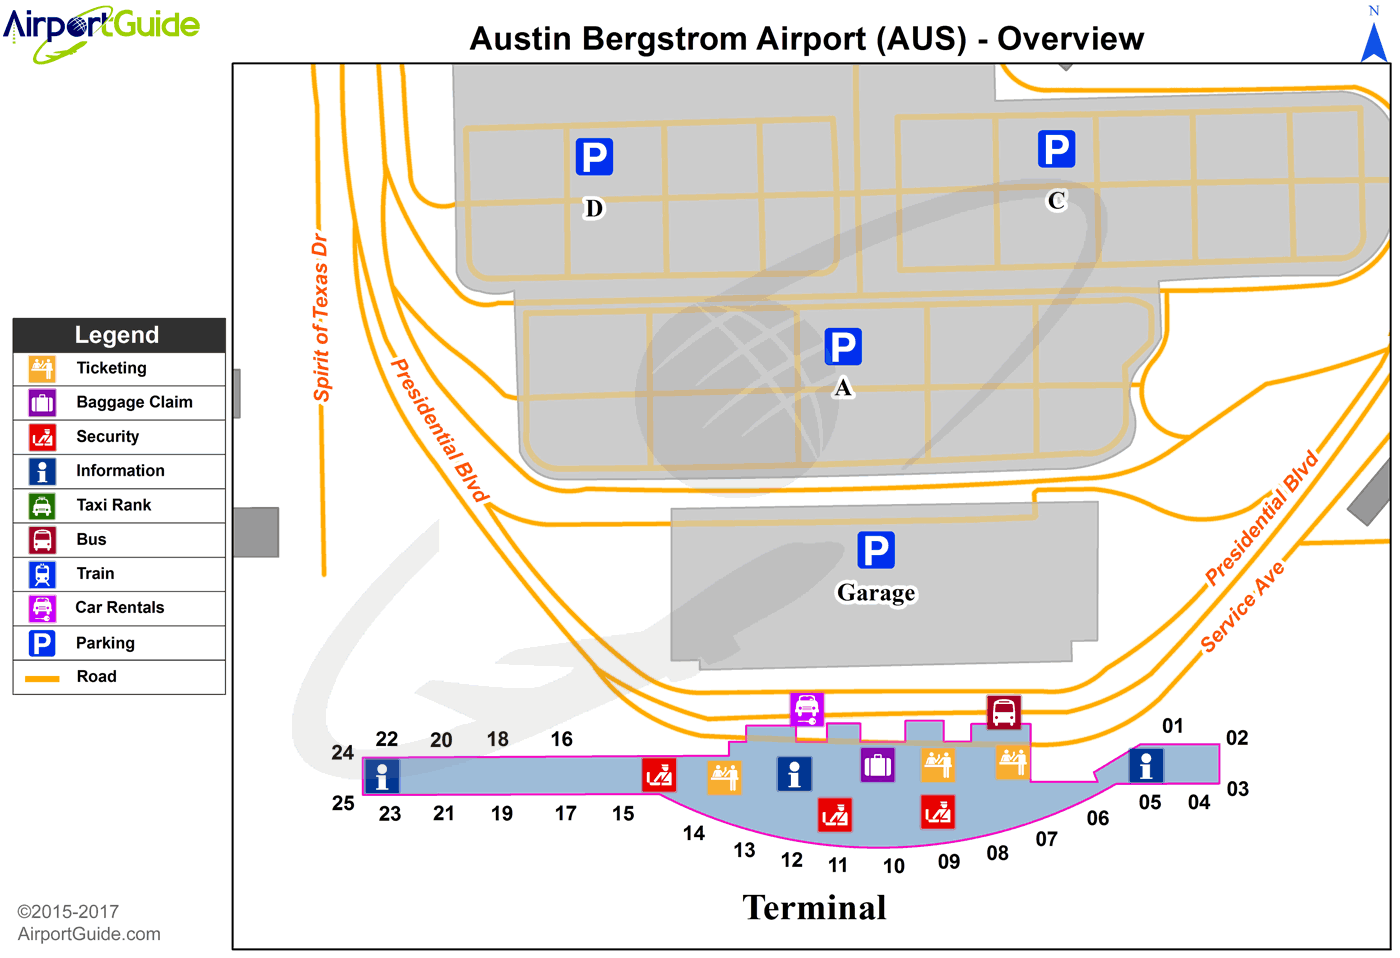 Austin - Austin-Bergstrom International (AUS) Airport Terminal Map - Overview